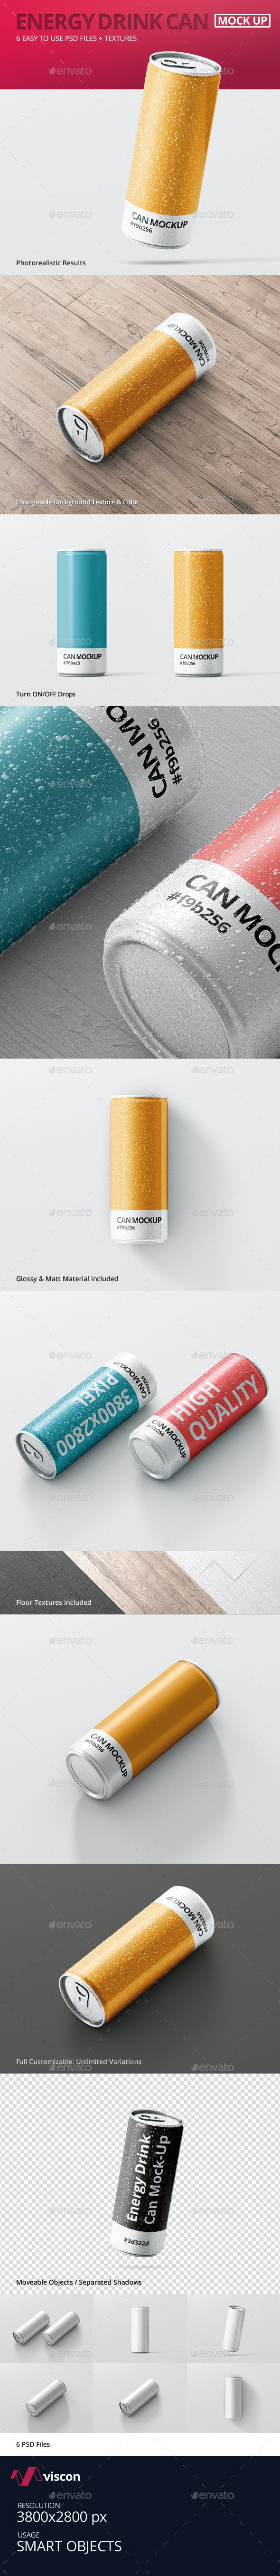 Energy Drink Can Mock-Up - Food and Drink Packaging